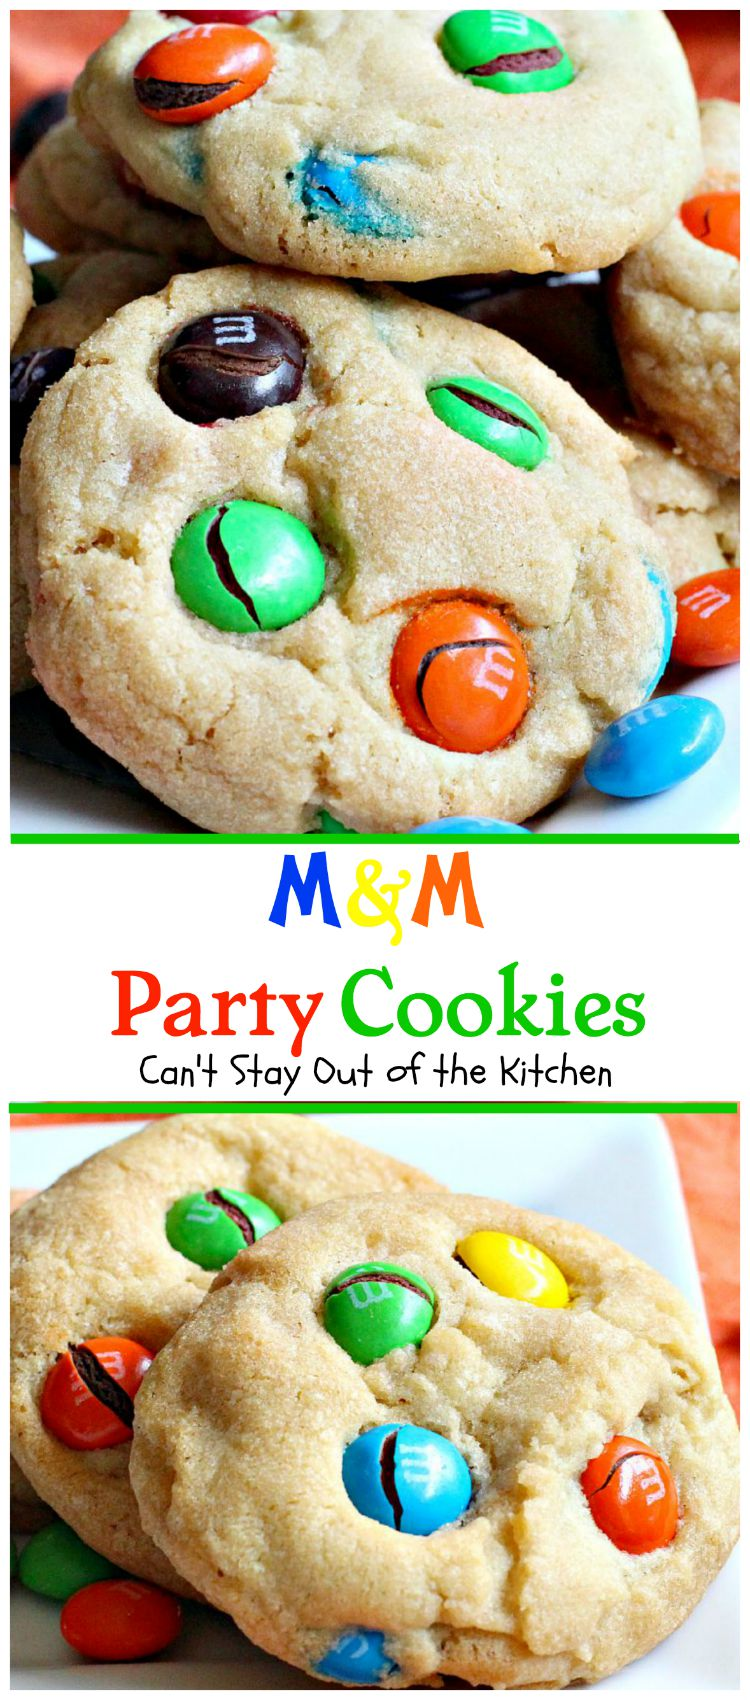 M M Party Cookies